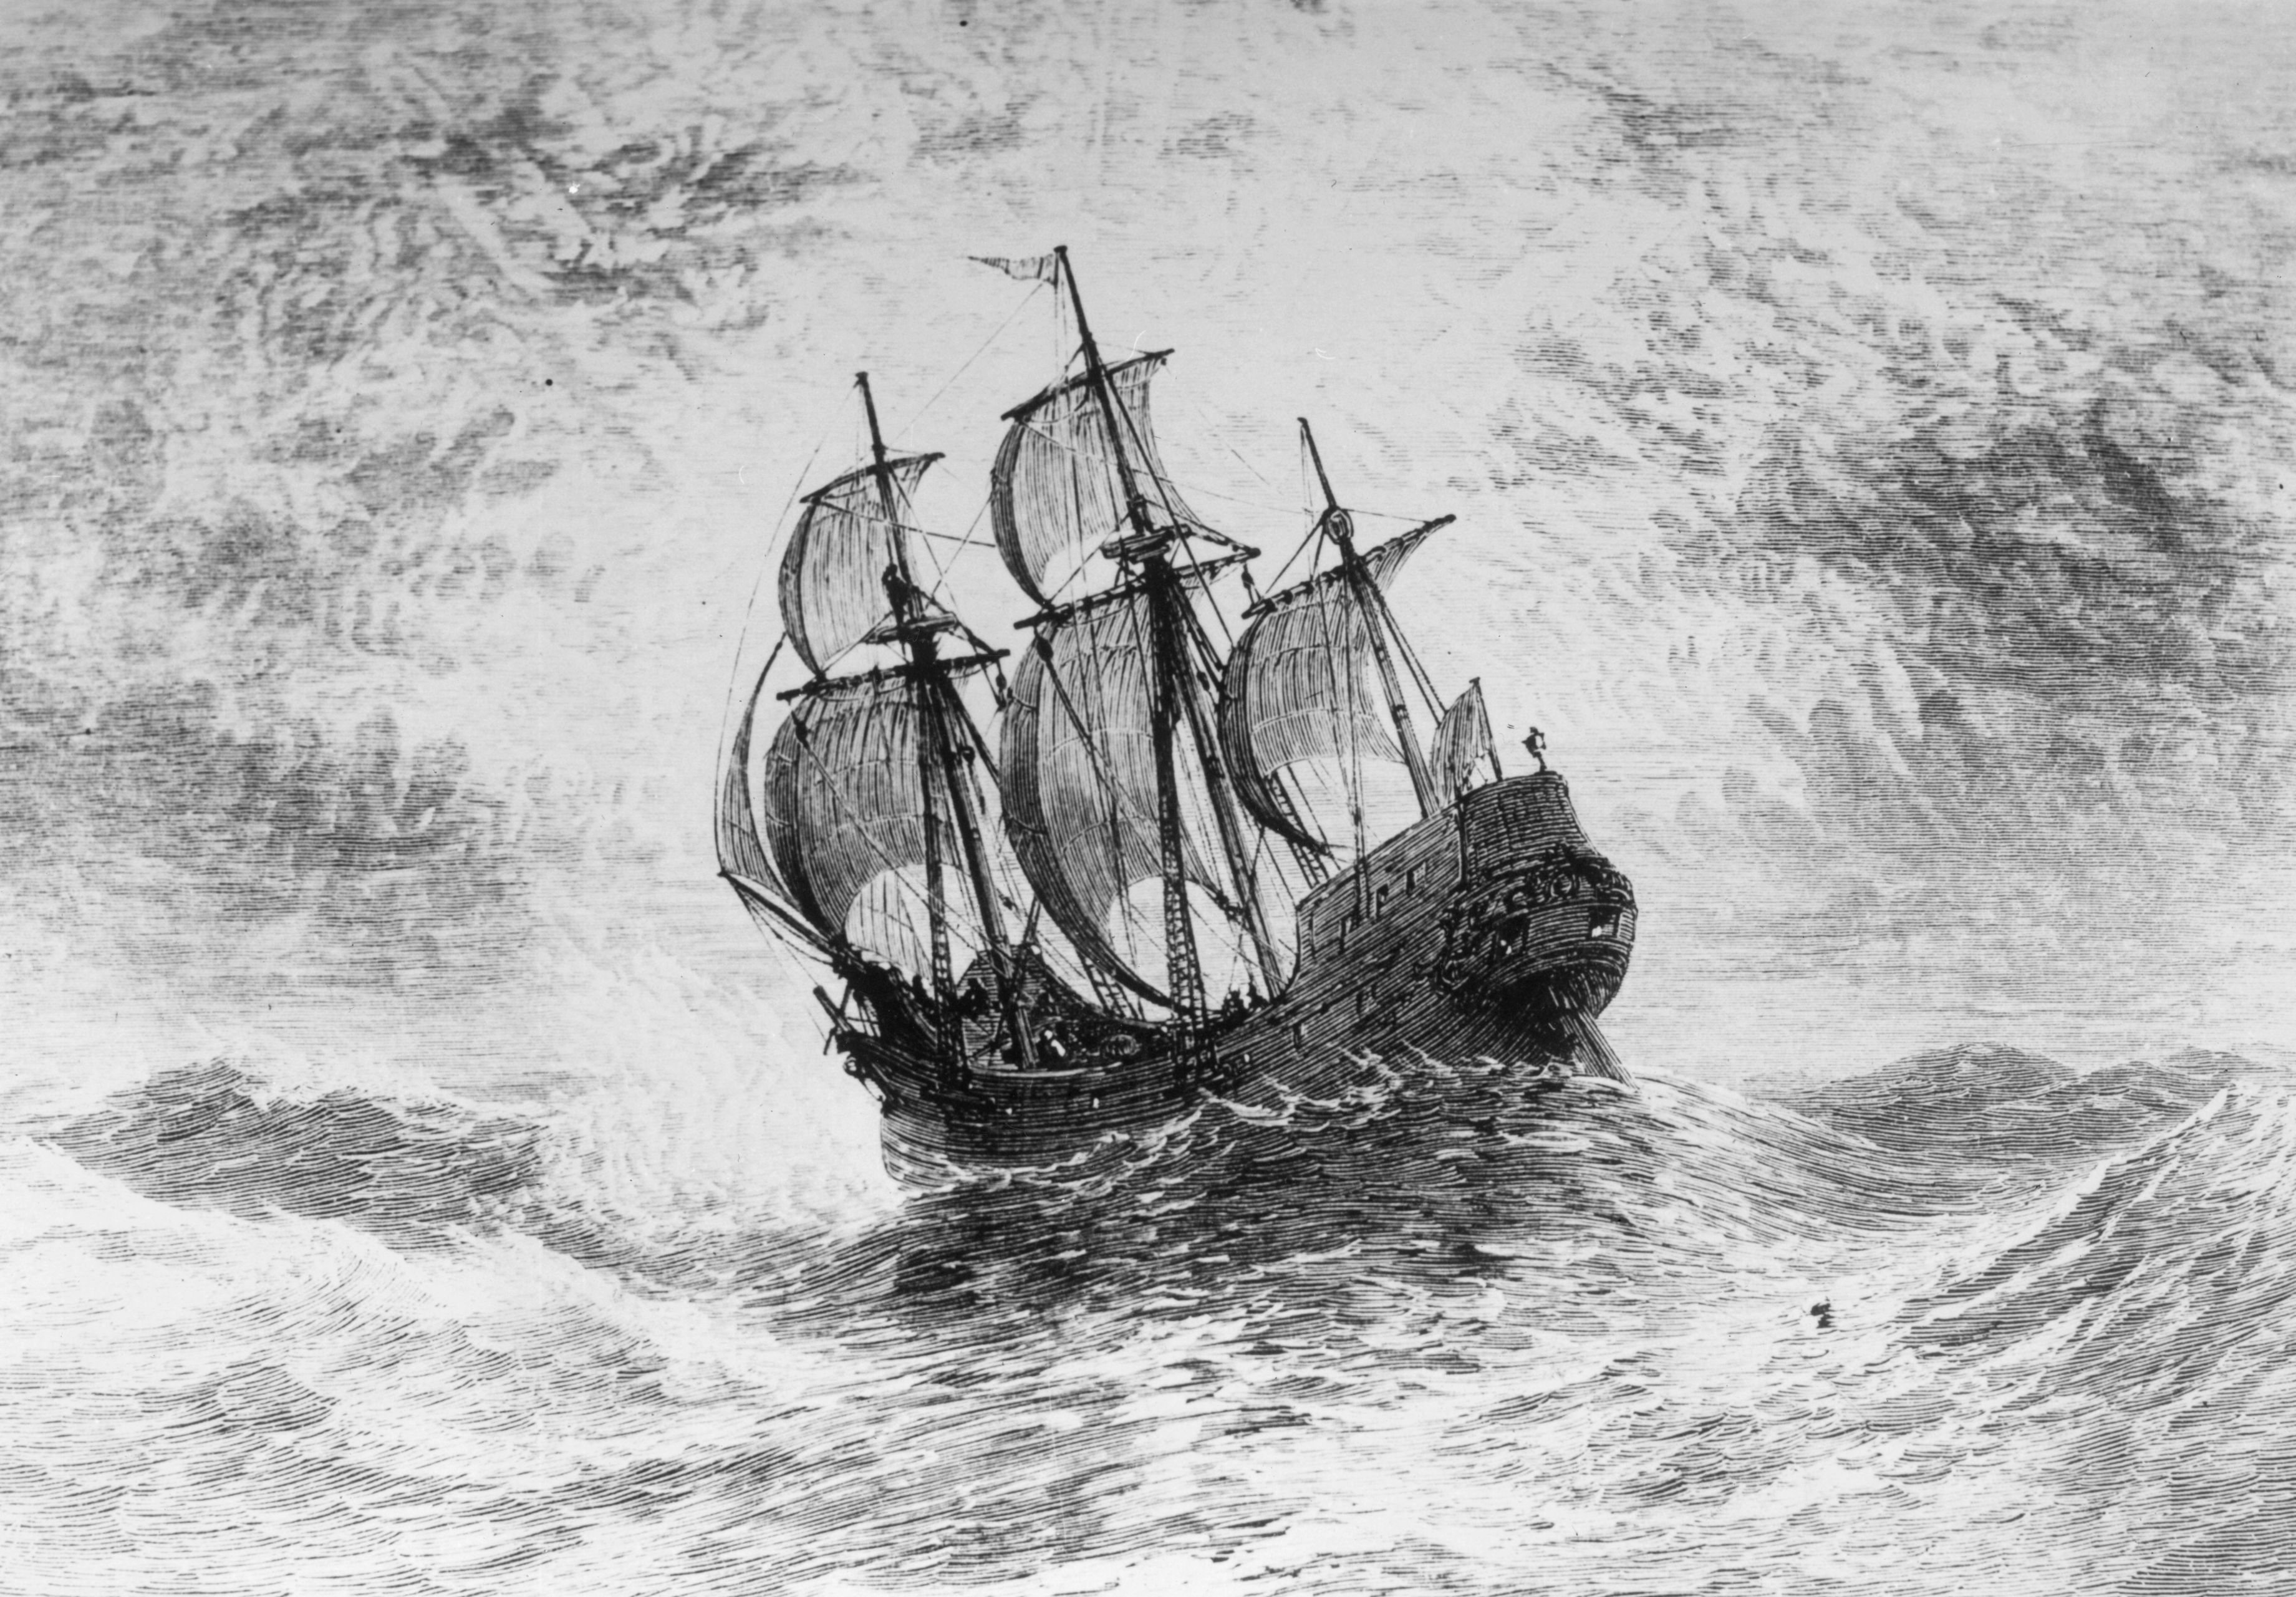 Reconsidering The Pilgrims, Piety And America's Founding Principles